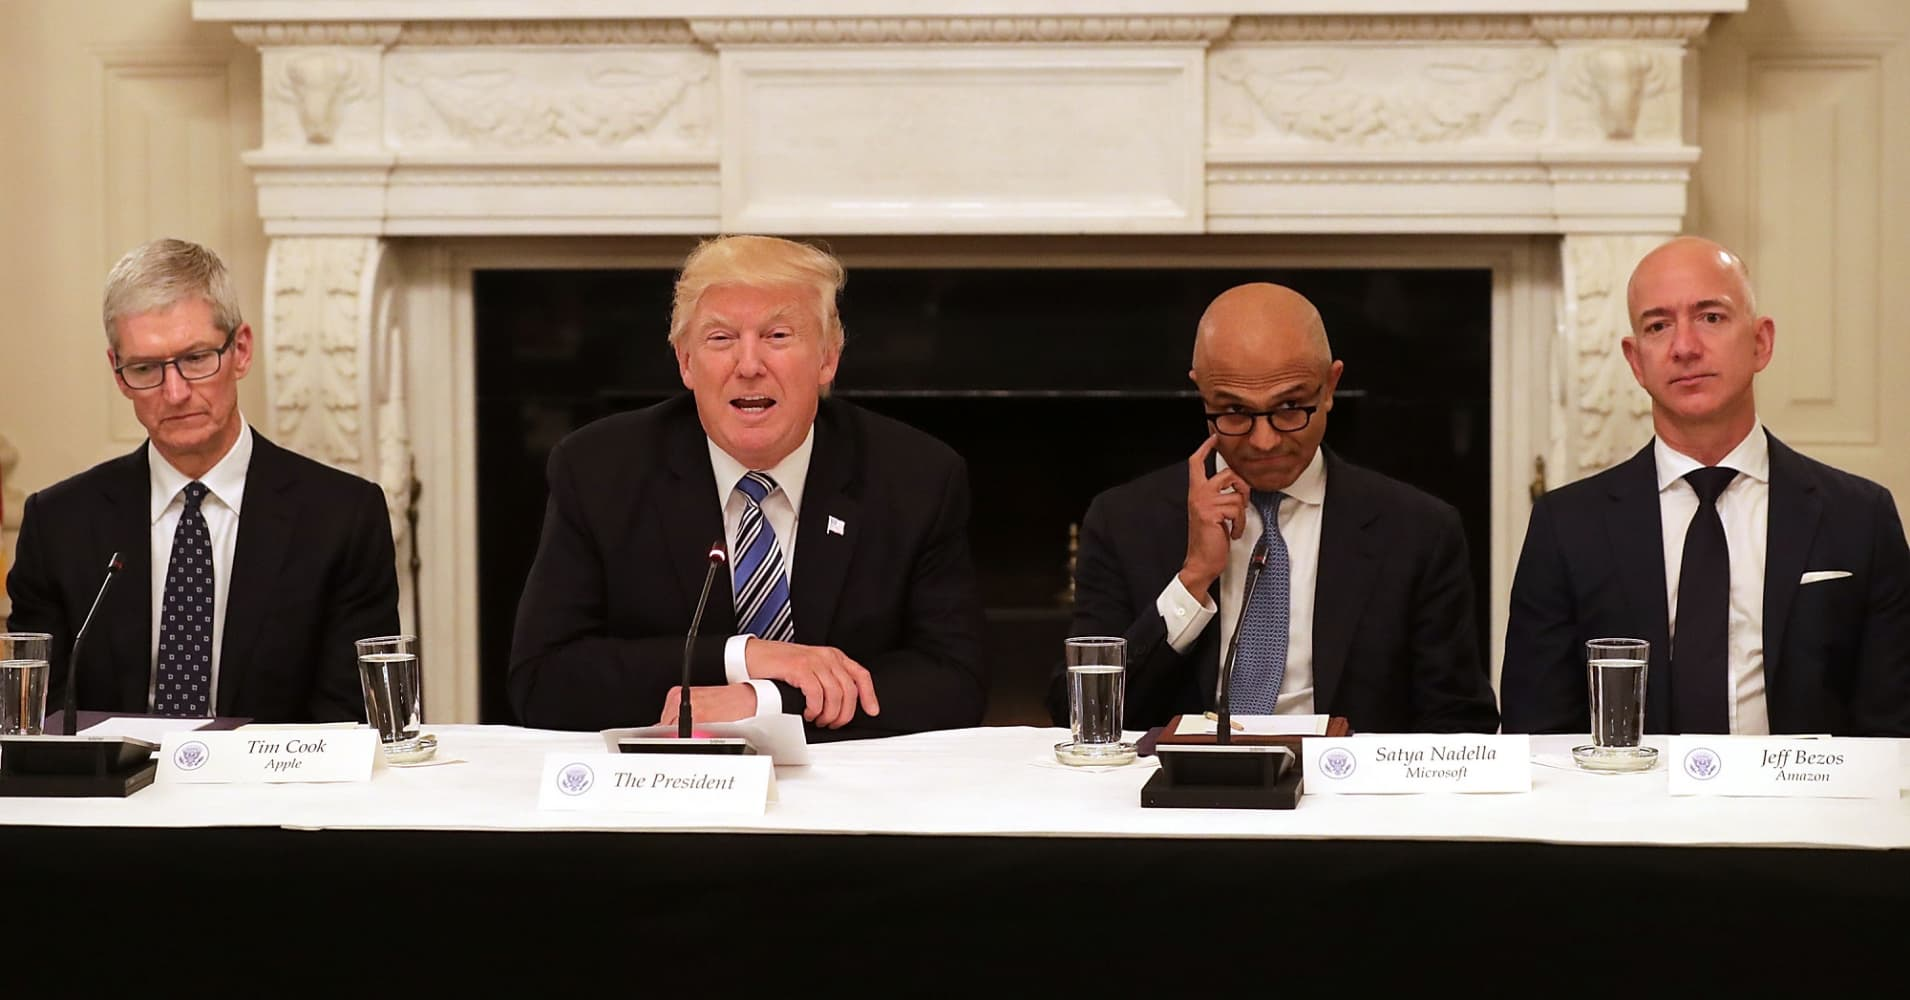 Apple CEO Tim Cook, Microsoft CEO Satya Nadella and Amazon CEO Jeff Bezos in the State Dining Room with President Trump.